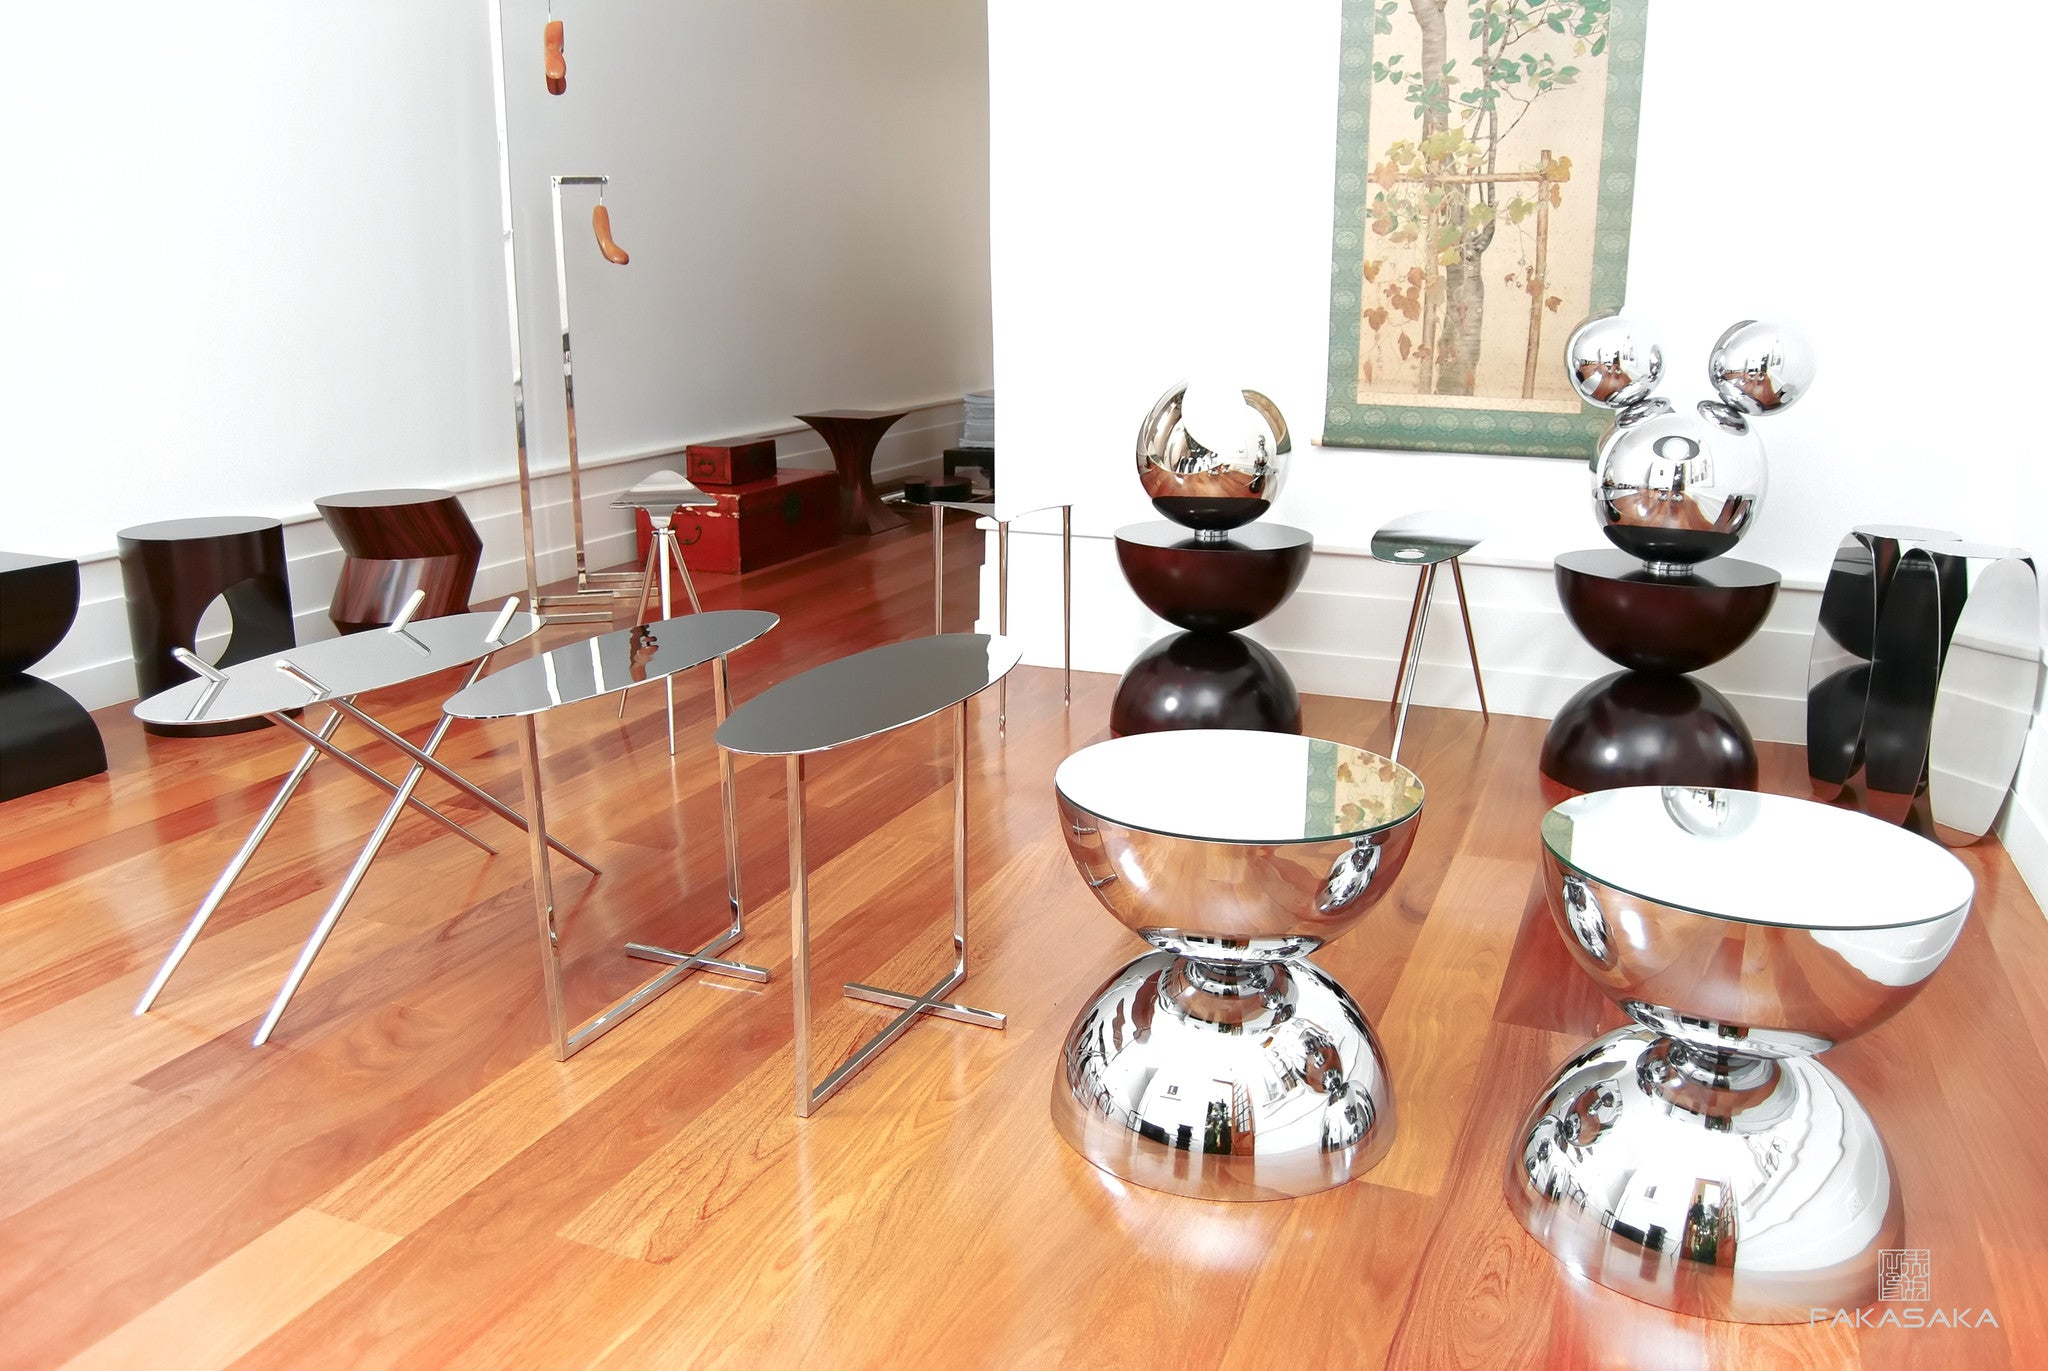 FA11 SIDE TABLE / DRINK TABLE<br><br>MIRROR ON TOP<br>CHROMED